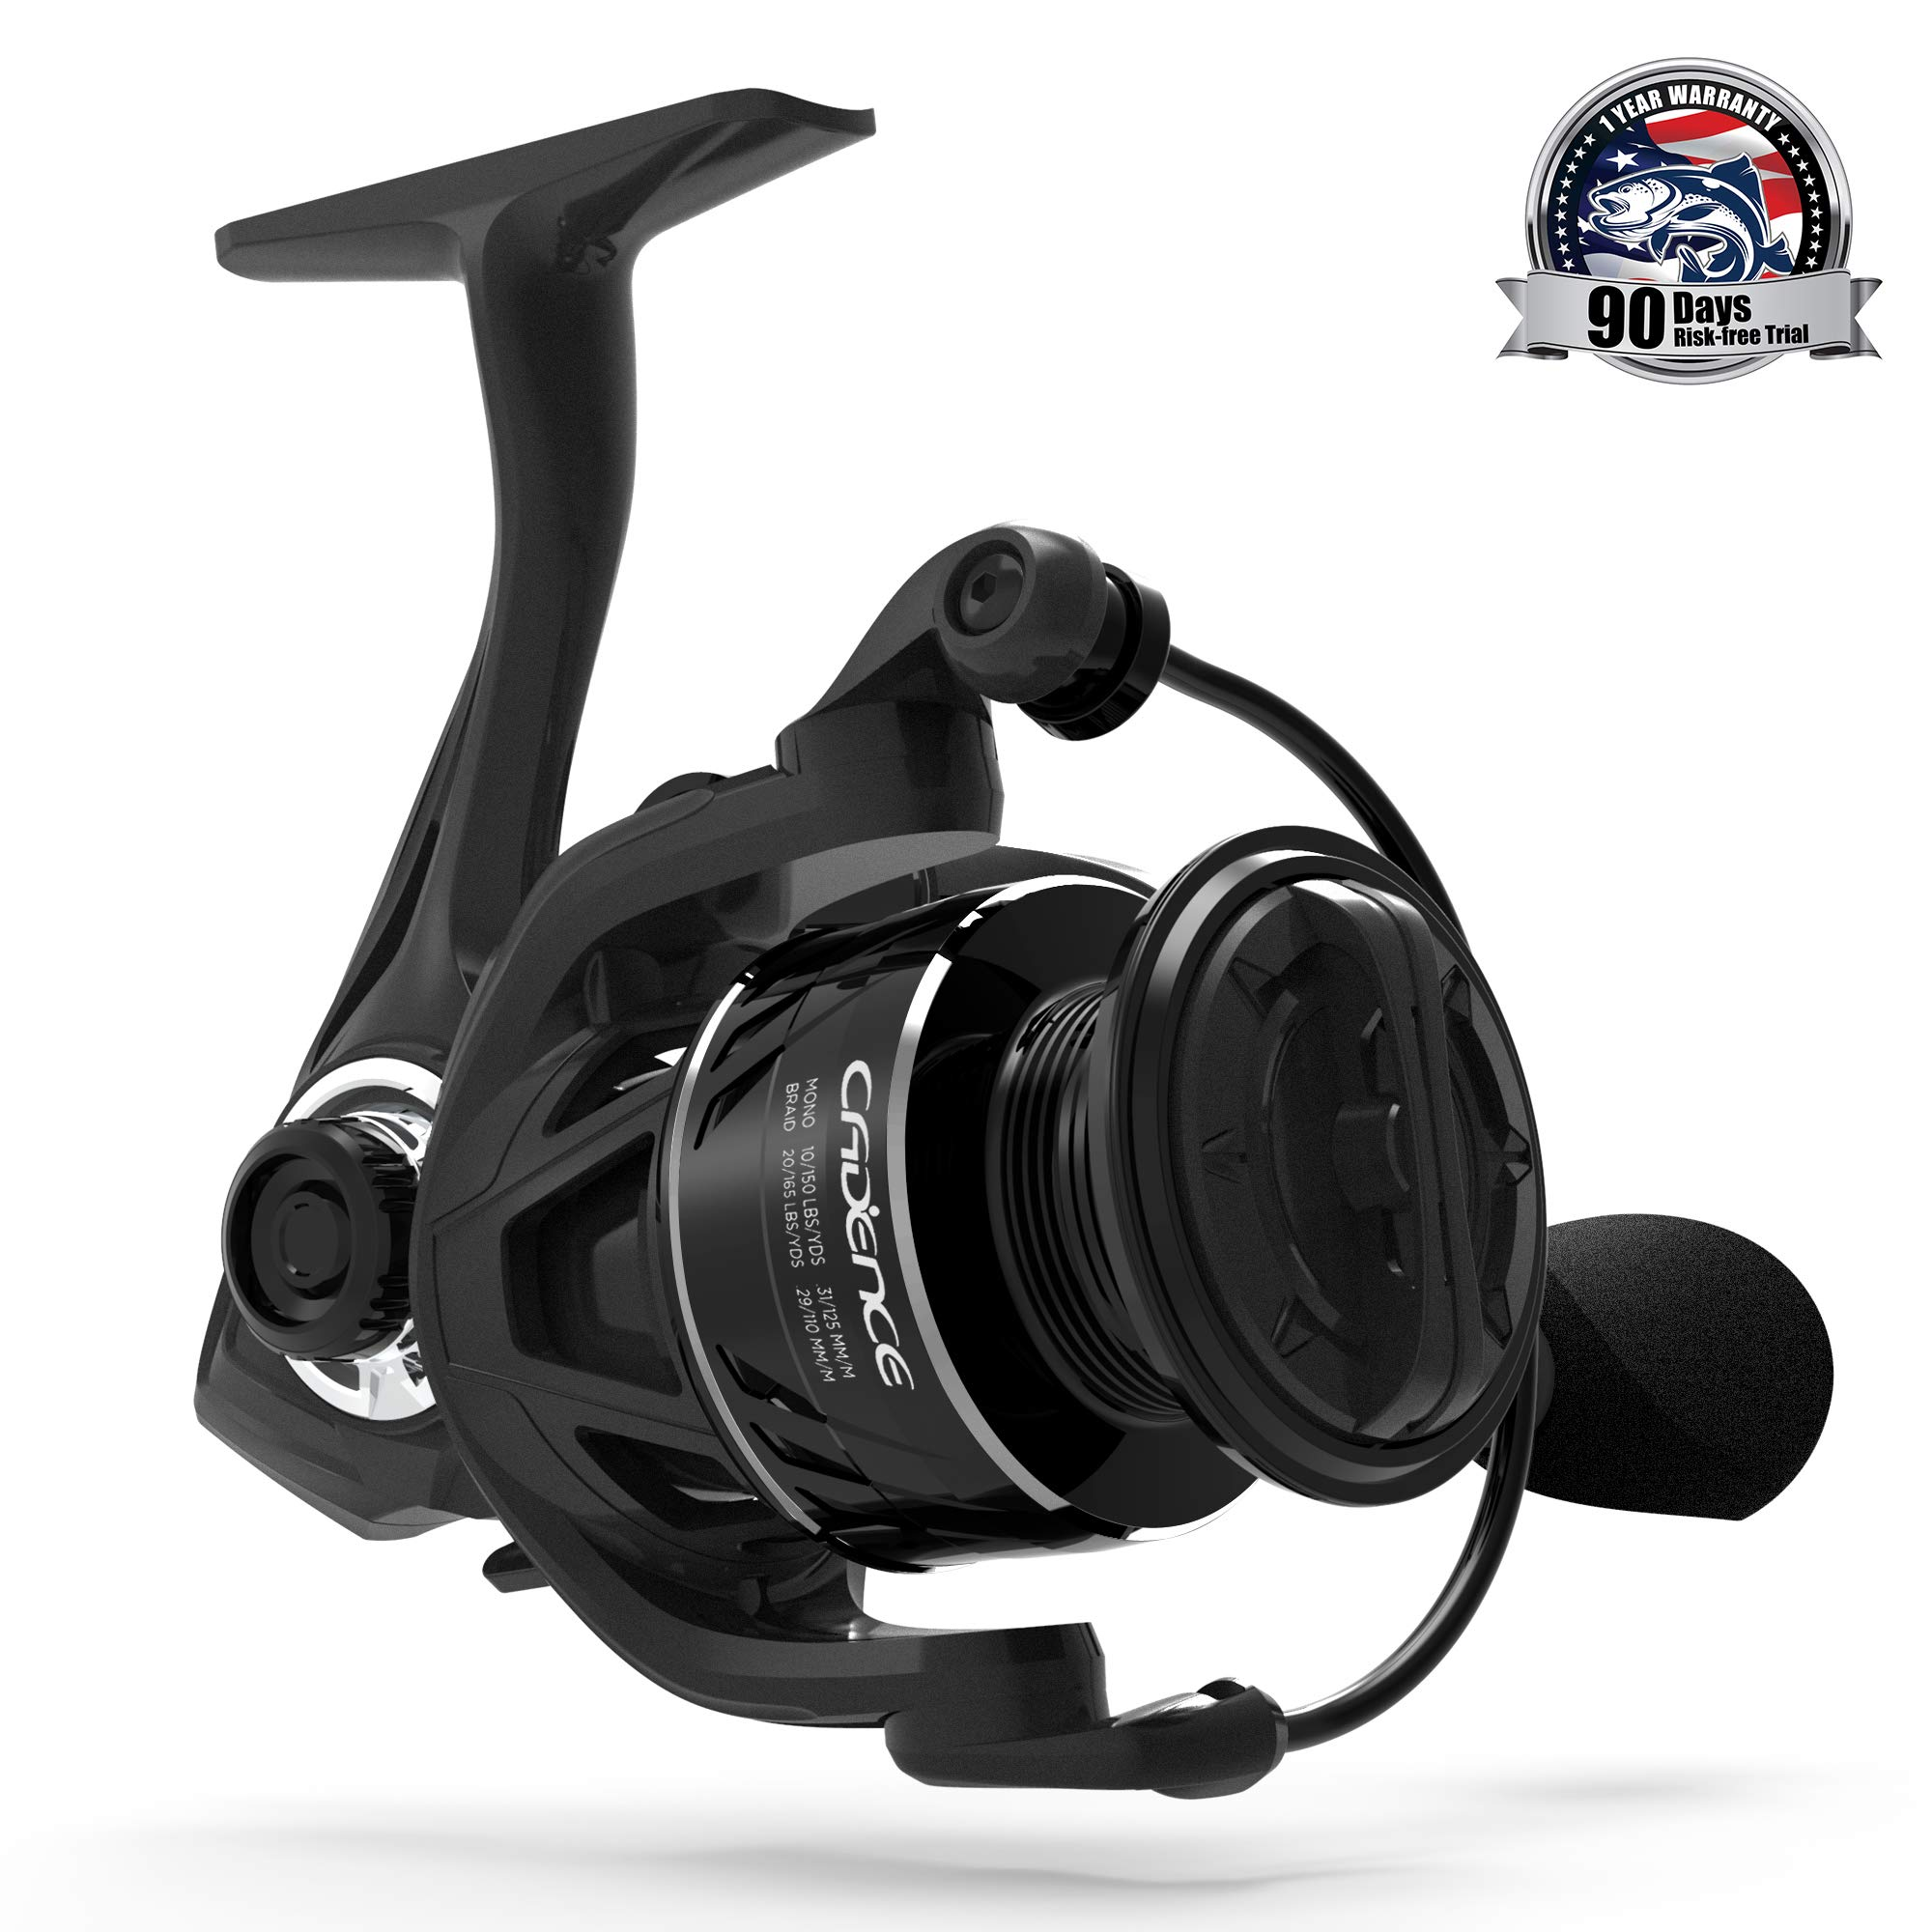 Cadence Fishing CS5 Spinning Reel | Lightweight Carbon Frame & Side Plate | 8 + 1 Corrosion Resistant Bearings | Size 1000